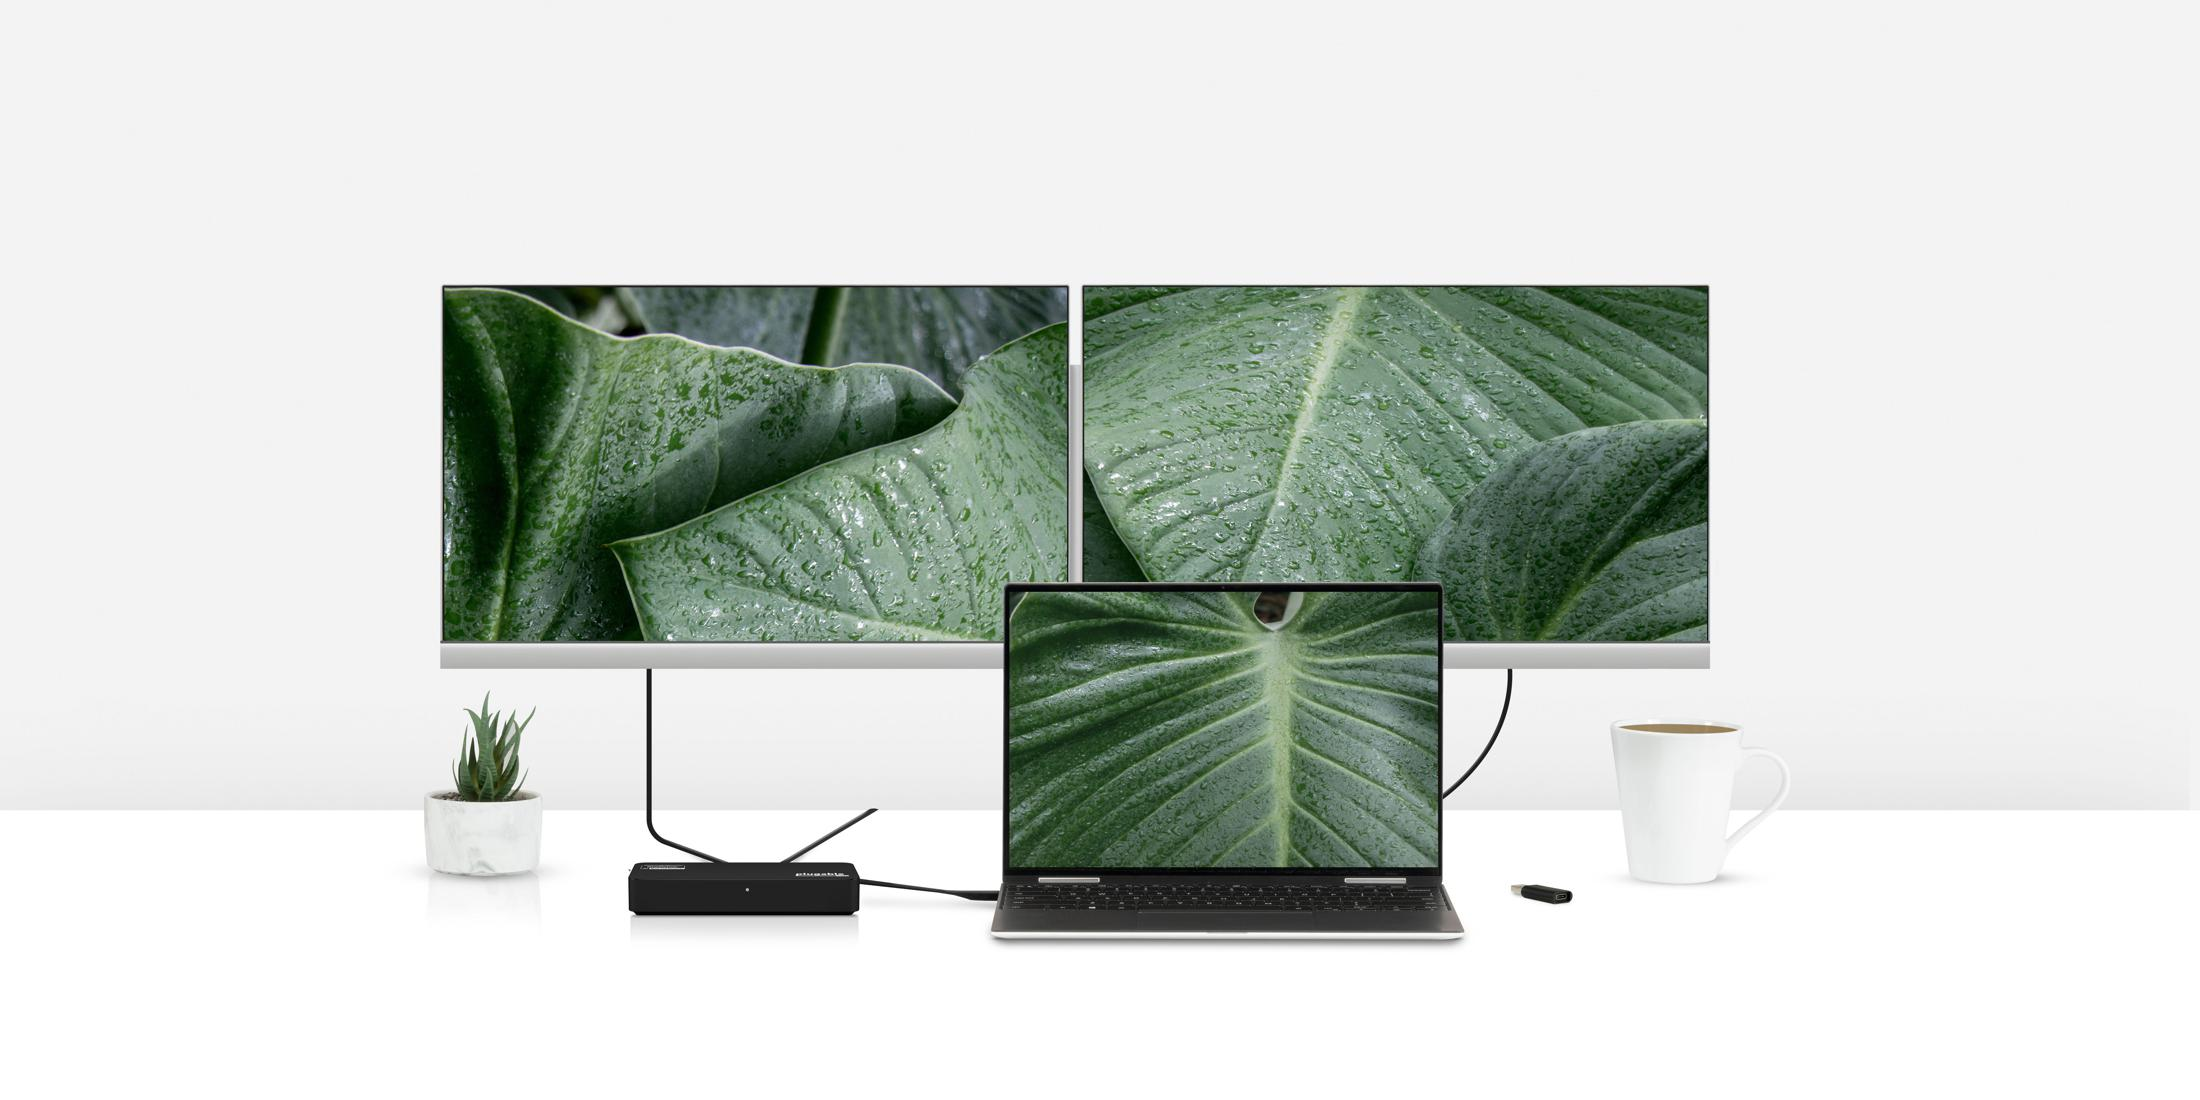 USBC-6950U connected to two monitors on a desk